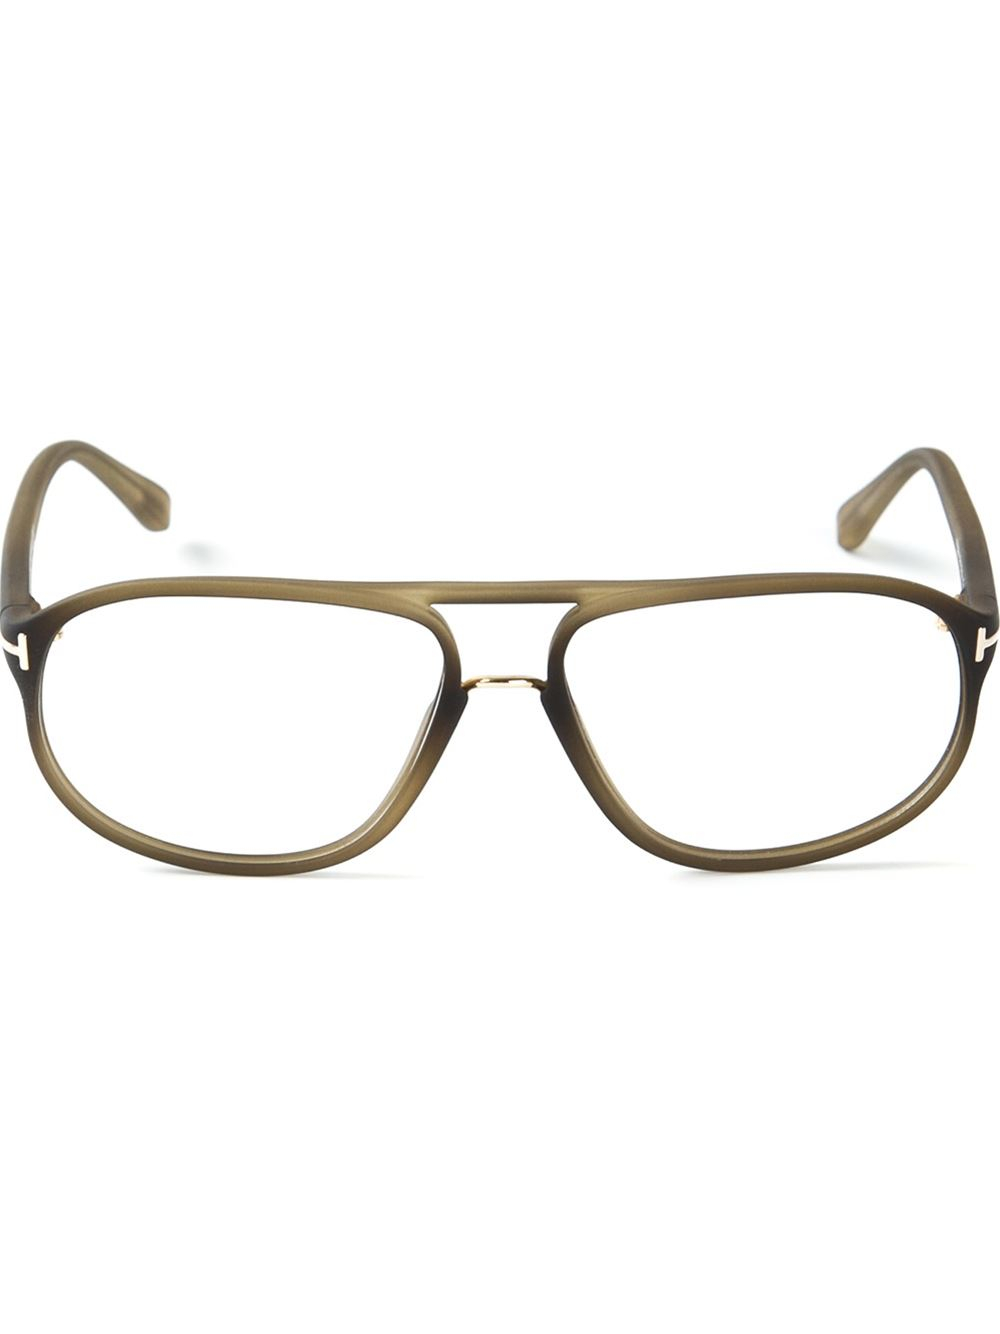 650397067d3 Tom Ford Round Frame Glasses